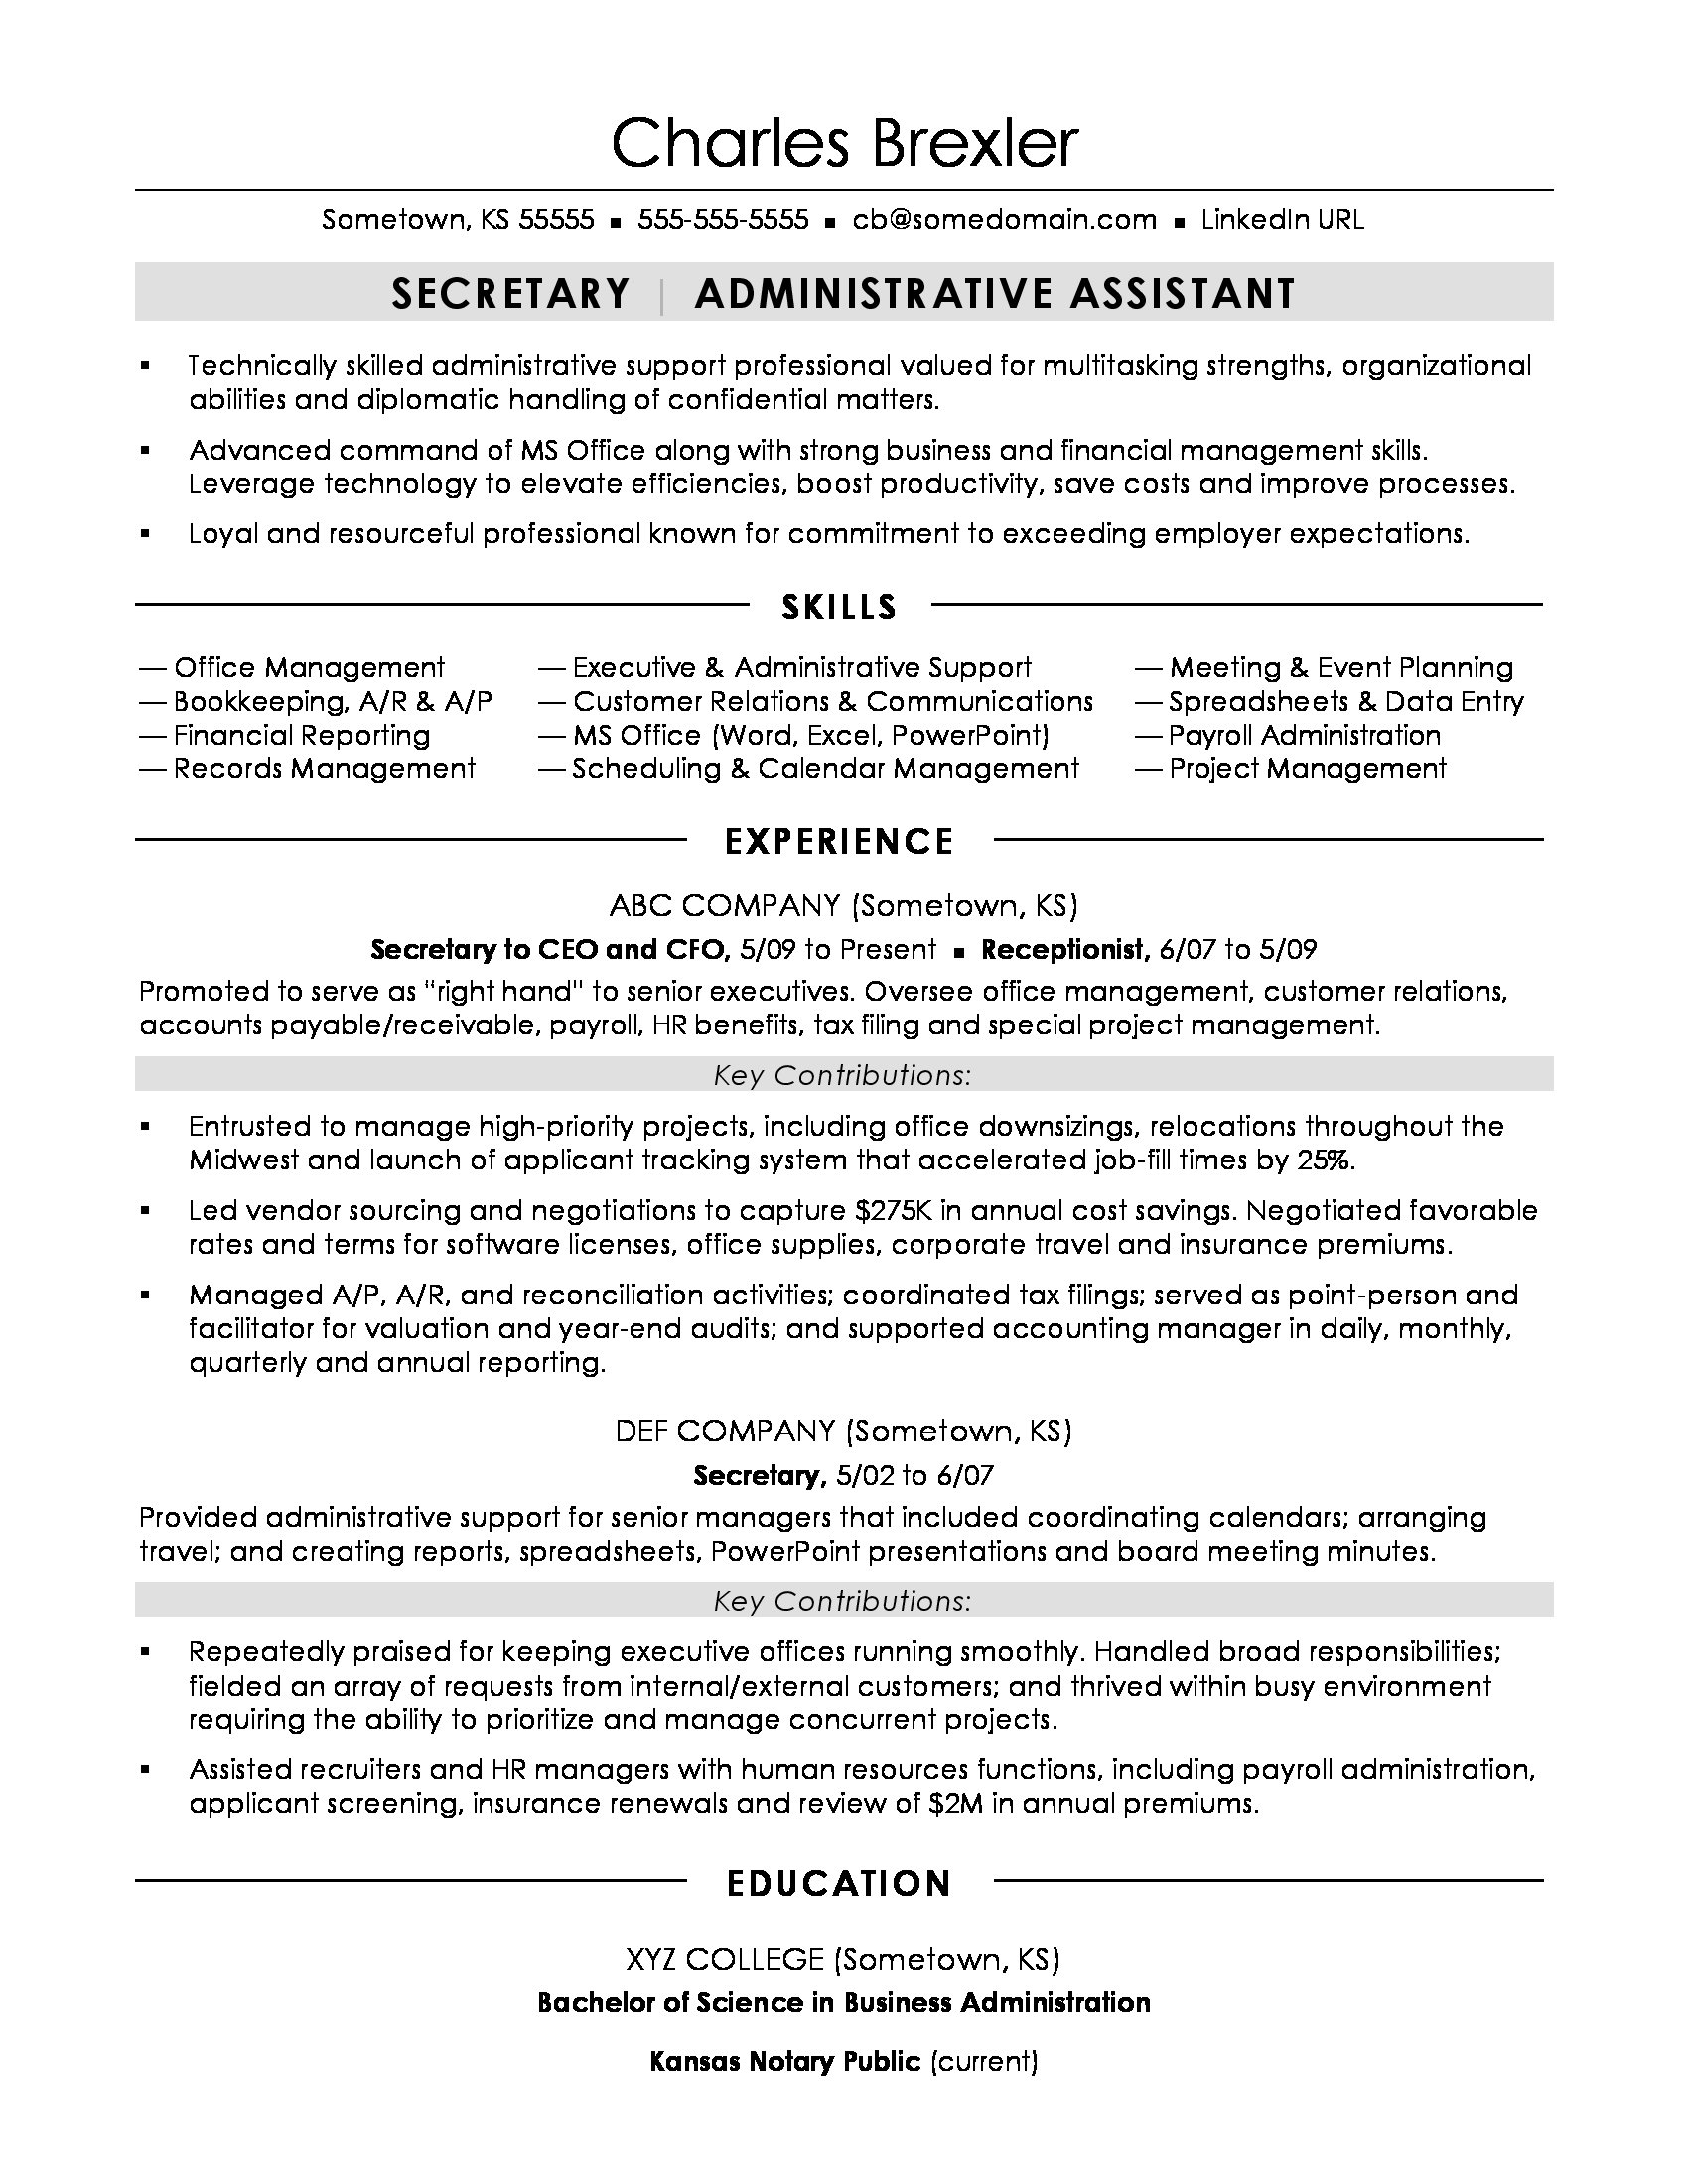 Secretary Resume Sample